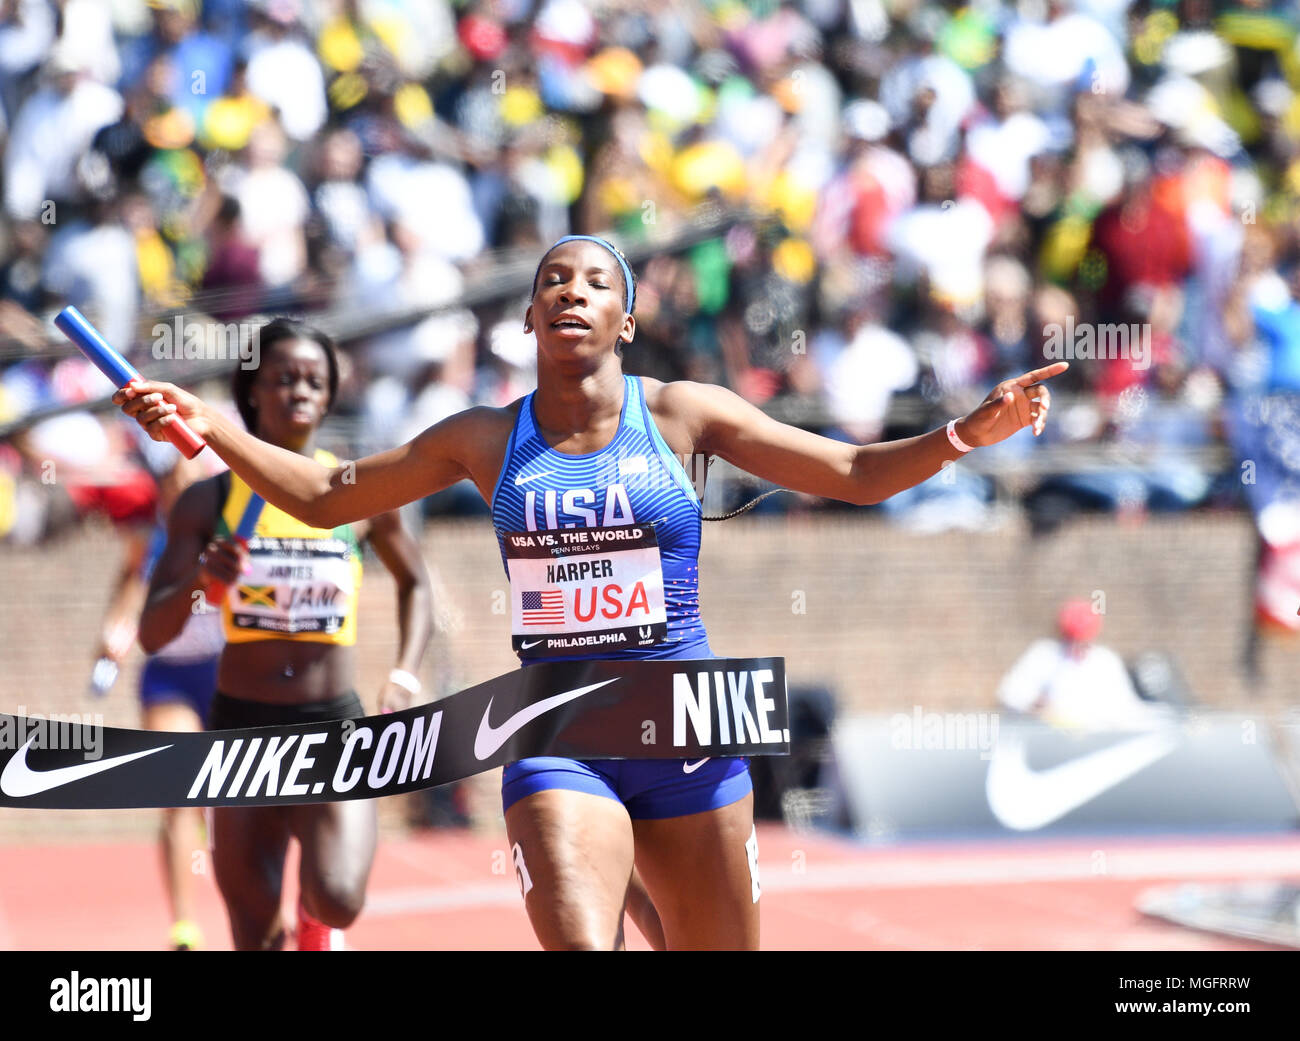 Philadelphia, Pennsylvania, USA. 28th Apr, 2018. DAINA HARPER, of the USA crosses the finish line first during the USA vs The World Women 4x400 at the 124th running of the Penn Relays in Philadelphia Pennsylvania Credit: Ricky Fitchett/ZUMA Wire/Alamy Live News - Stock Image